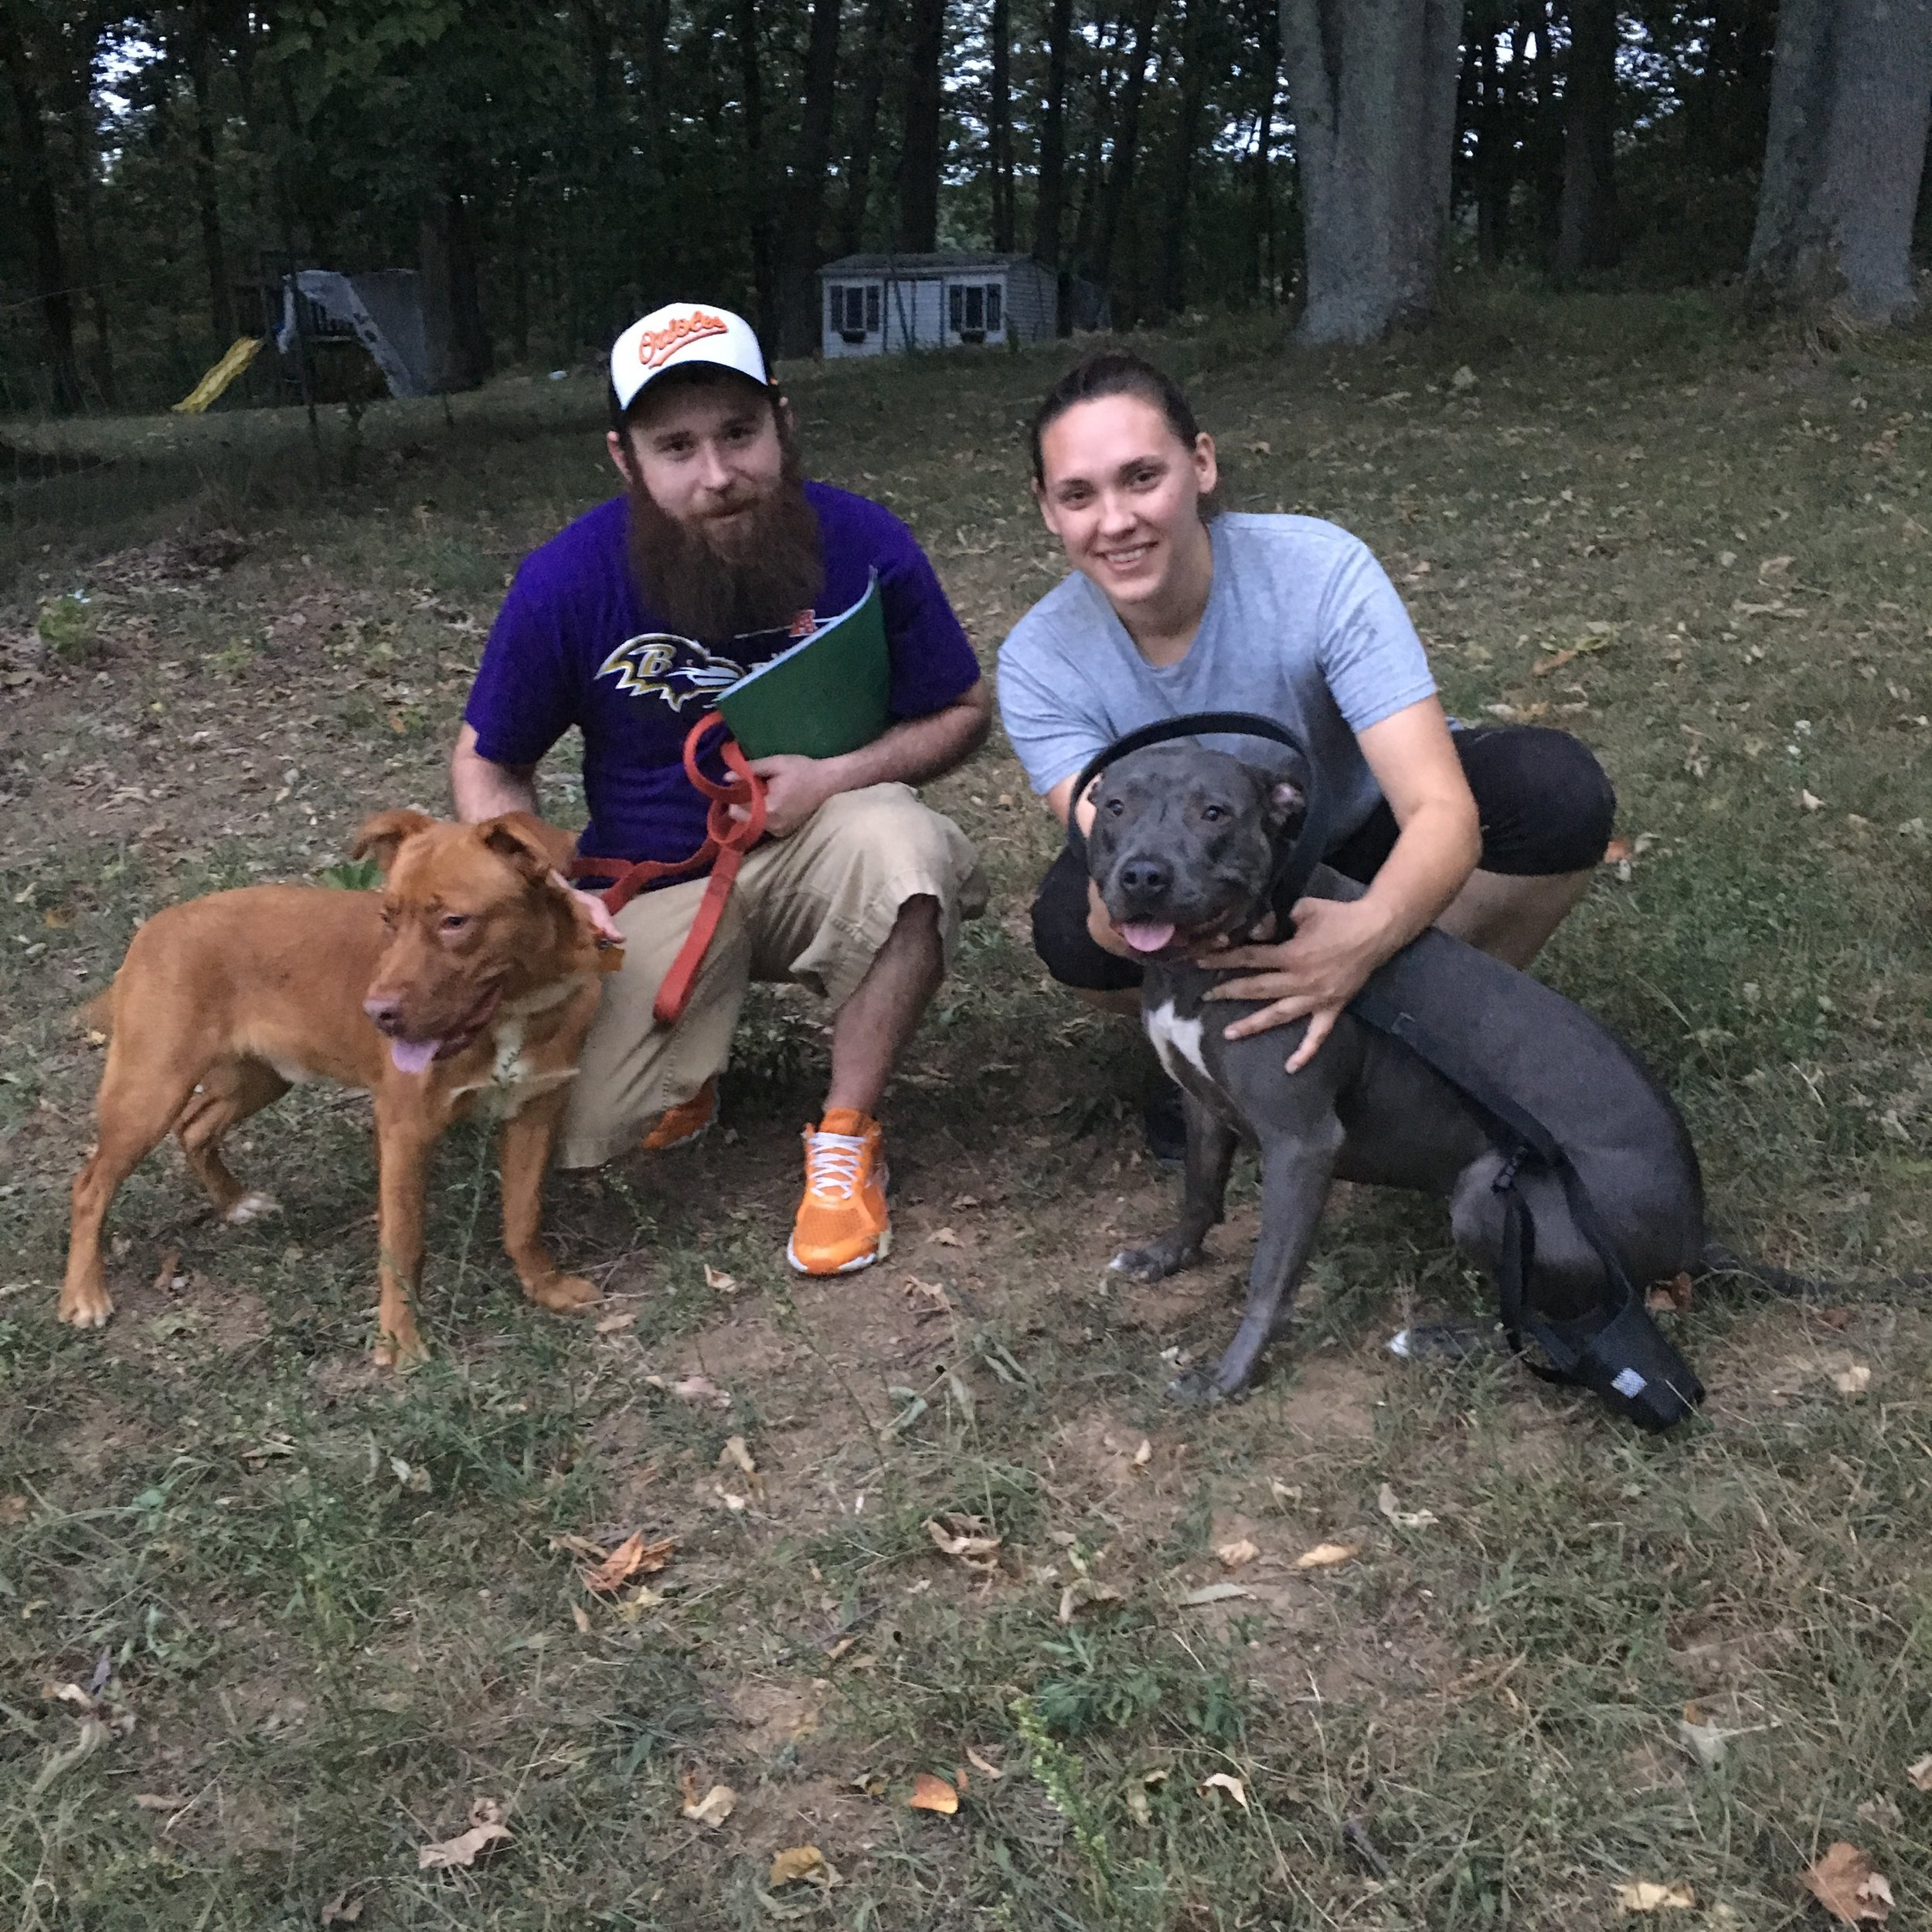 The Sluss' added Kirby (left) to their family when he arrived to Maryland!